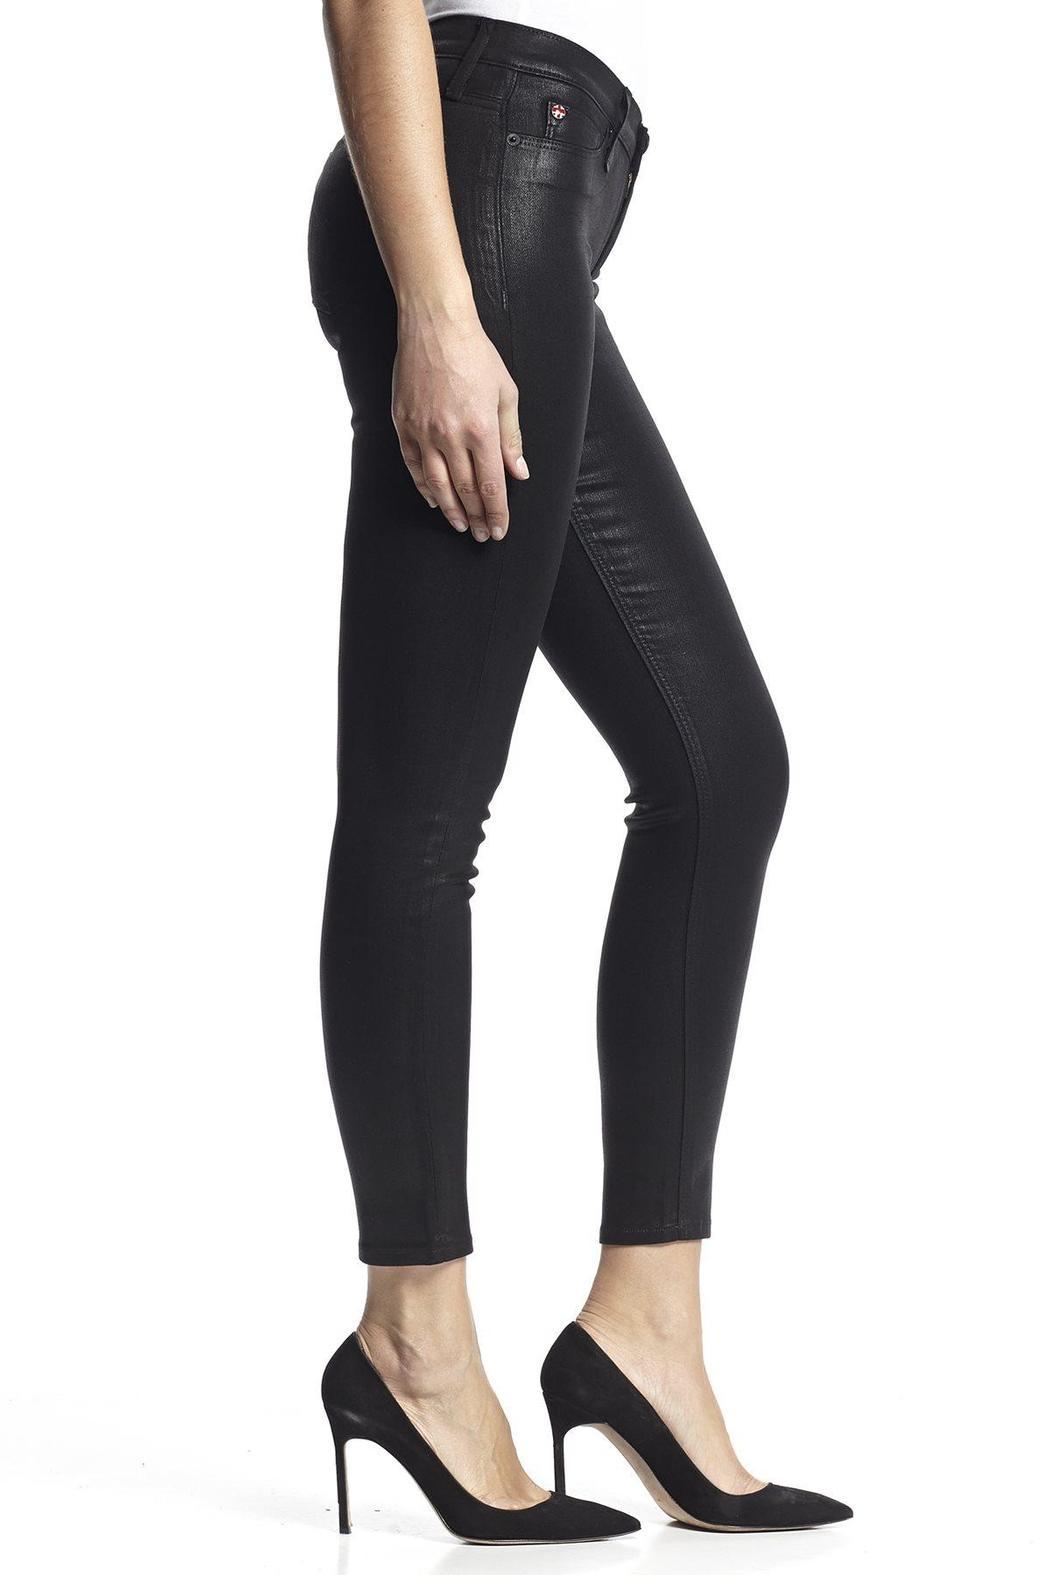 5dfbfc227e3 Hudson Jeans Nico Skinny Noir-Coated from North Shore by Assets Jean ...